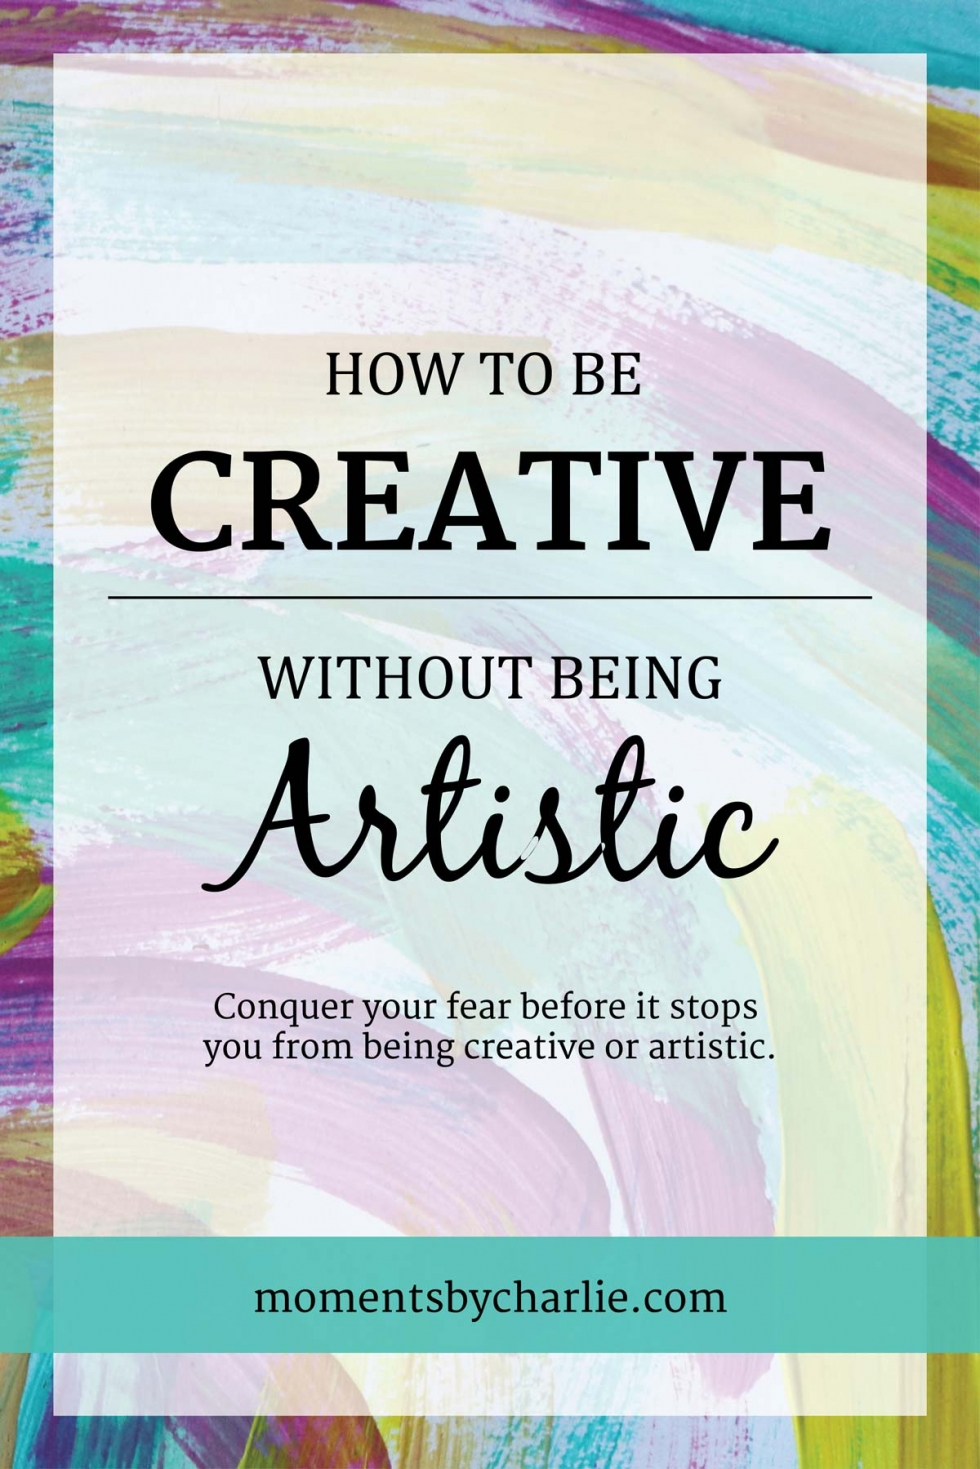 How To Be Creative Without Being Artistic // Moments by Charlie Albright | Art (Acrylic Painting, Oil Painting) + Fashion (Sewing, Fabric Manipulation) + Lifestyle (Mindful Living) plus Photography | Creative Lifestyle Blog | Made in Adelaide, Australia